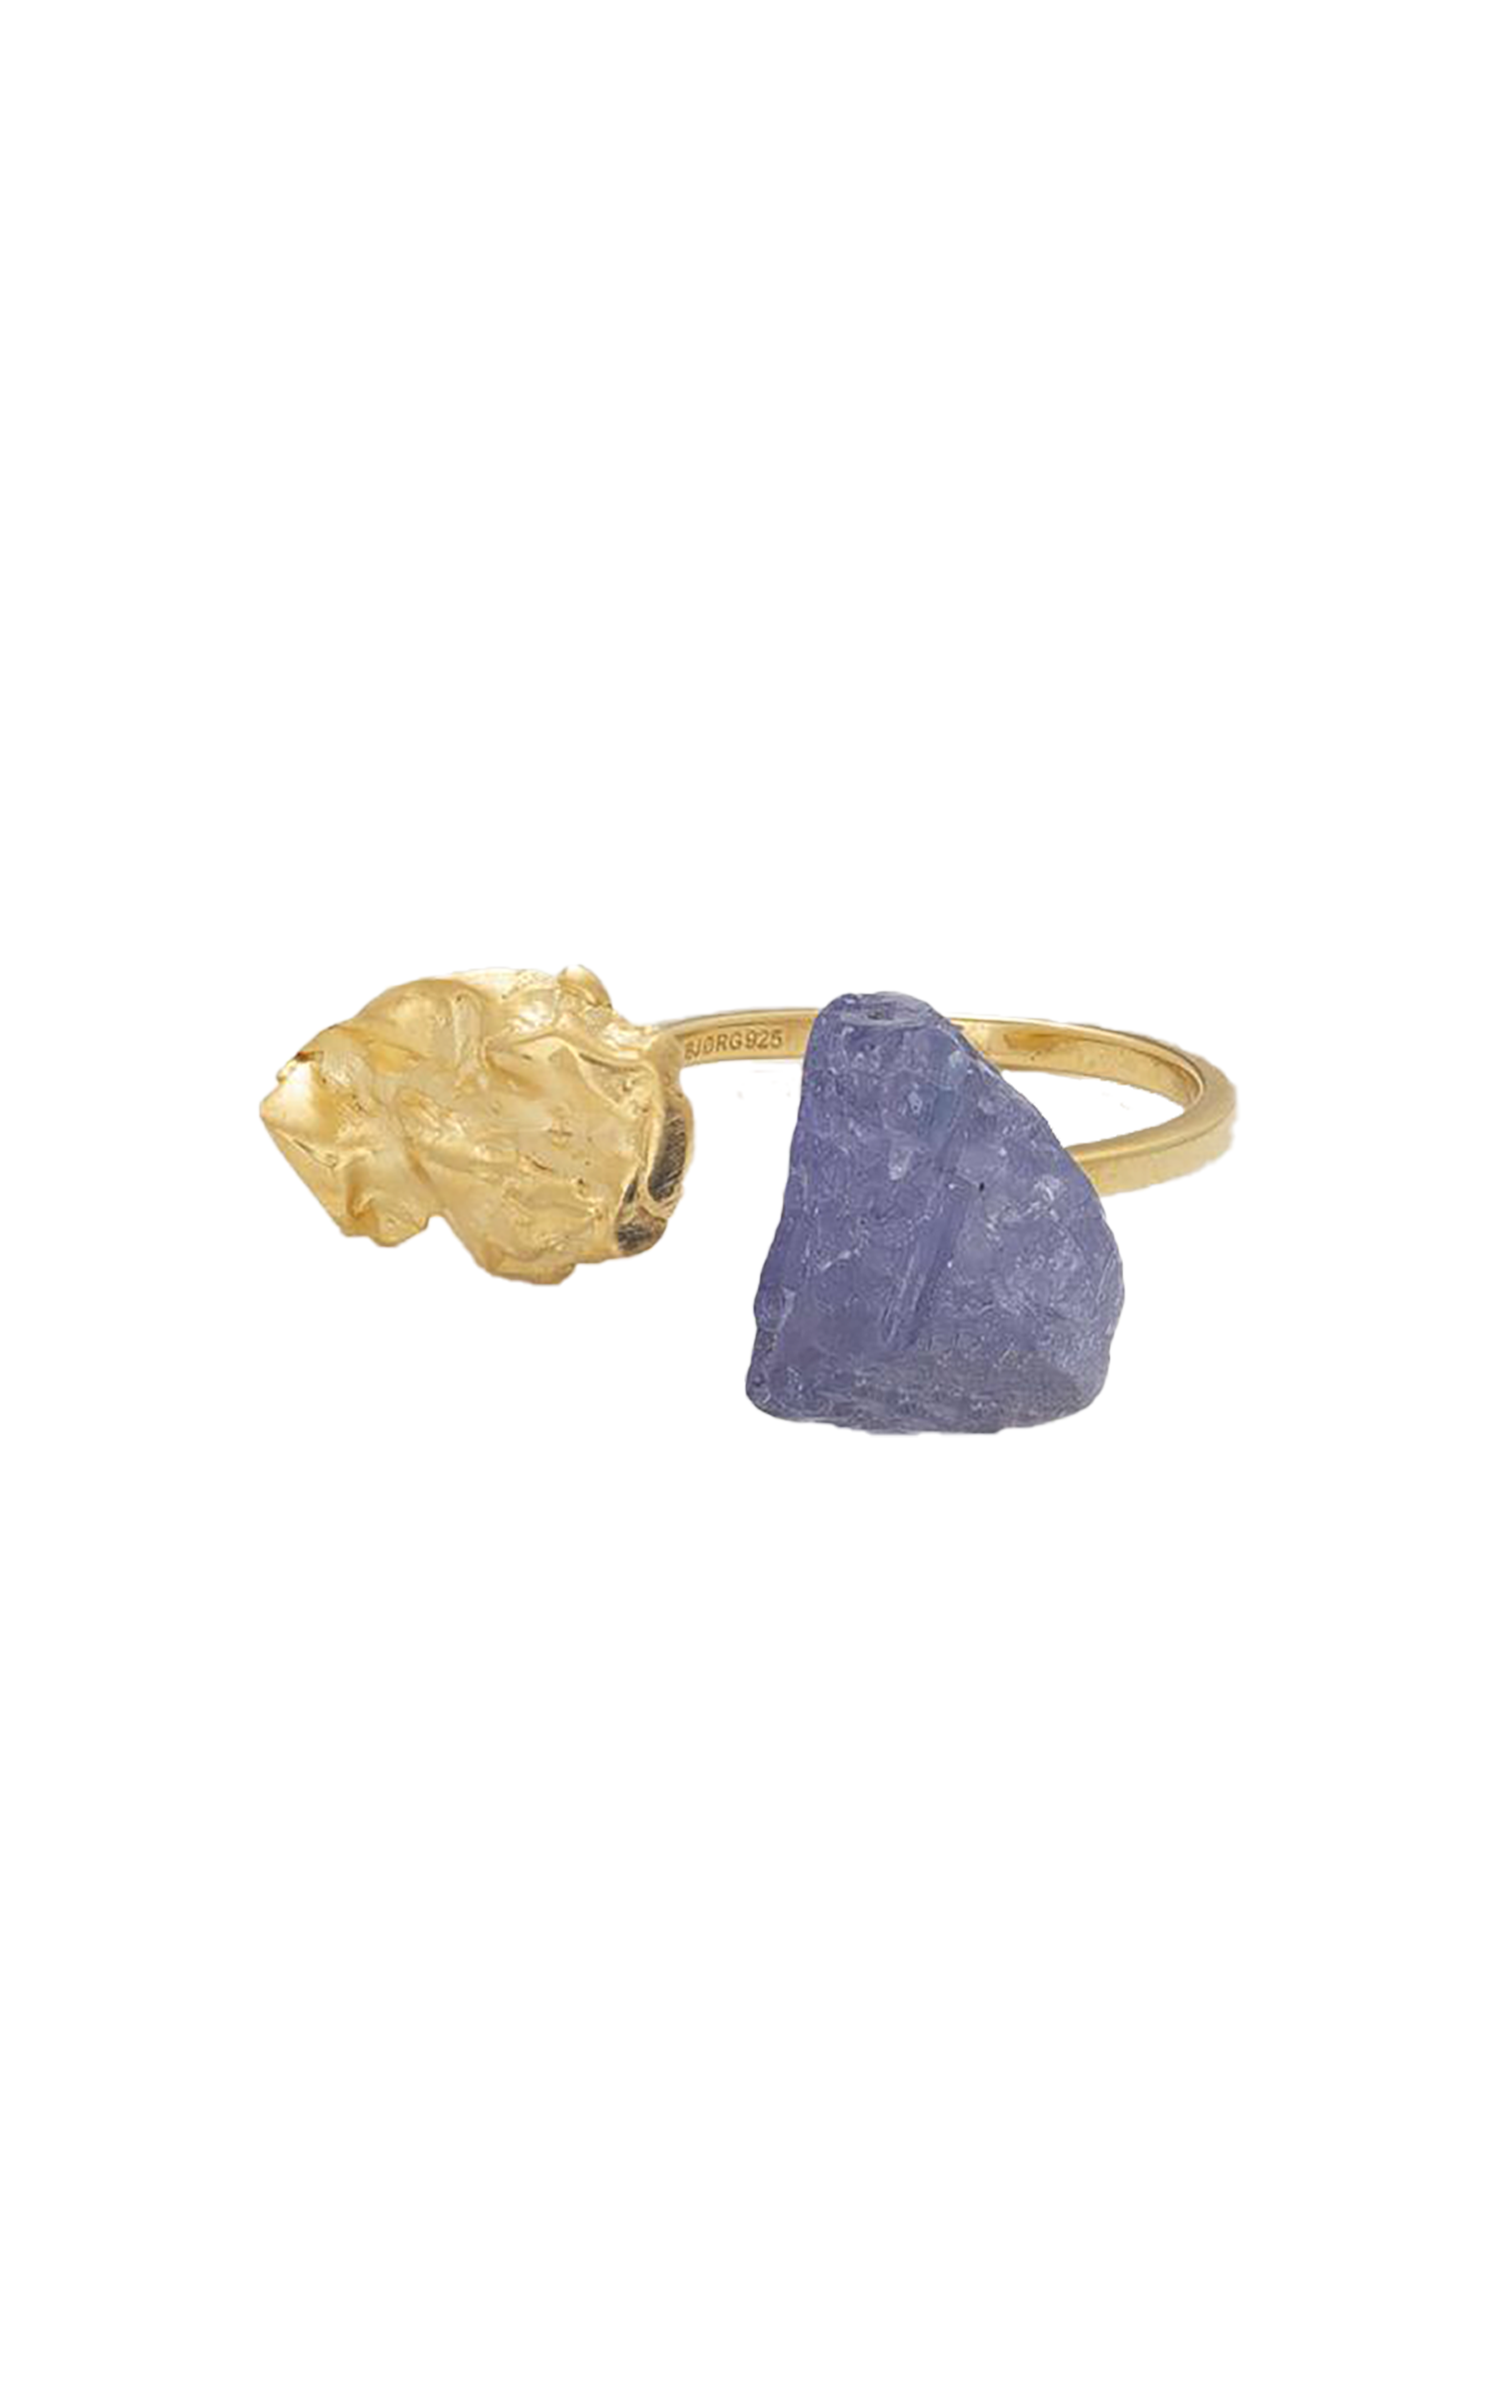 The Wild Flower Tanzanite Ring